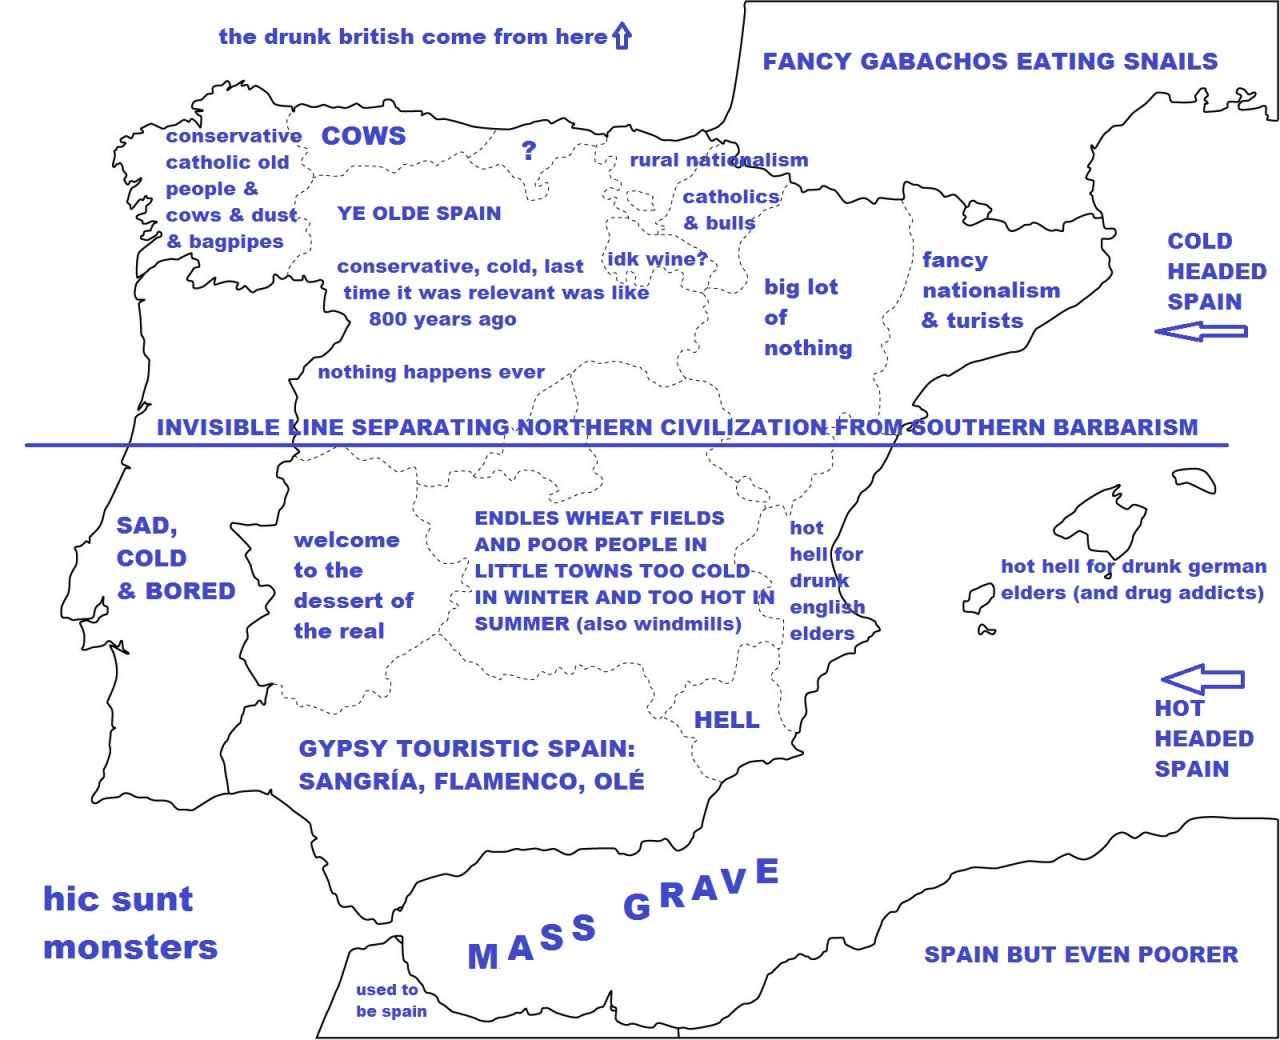 Spain stereotype map